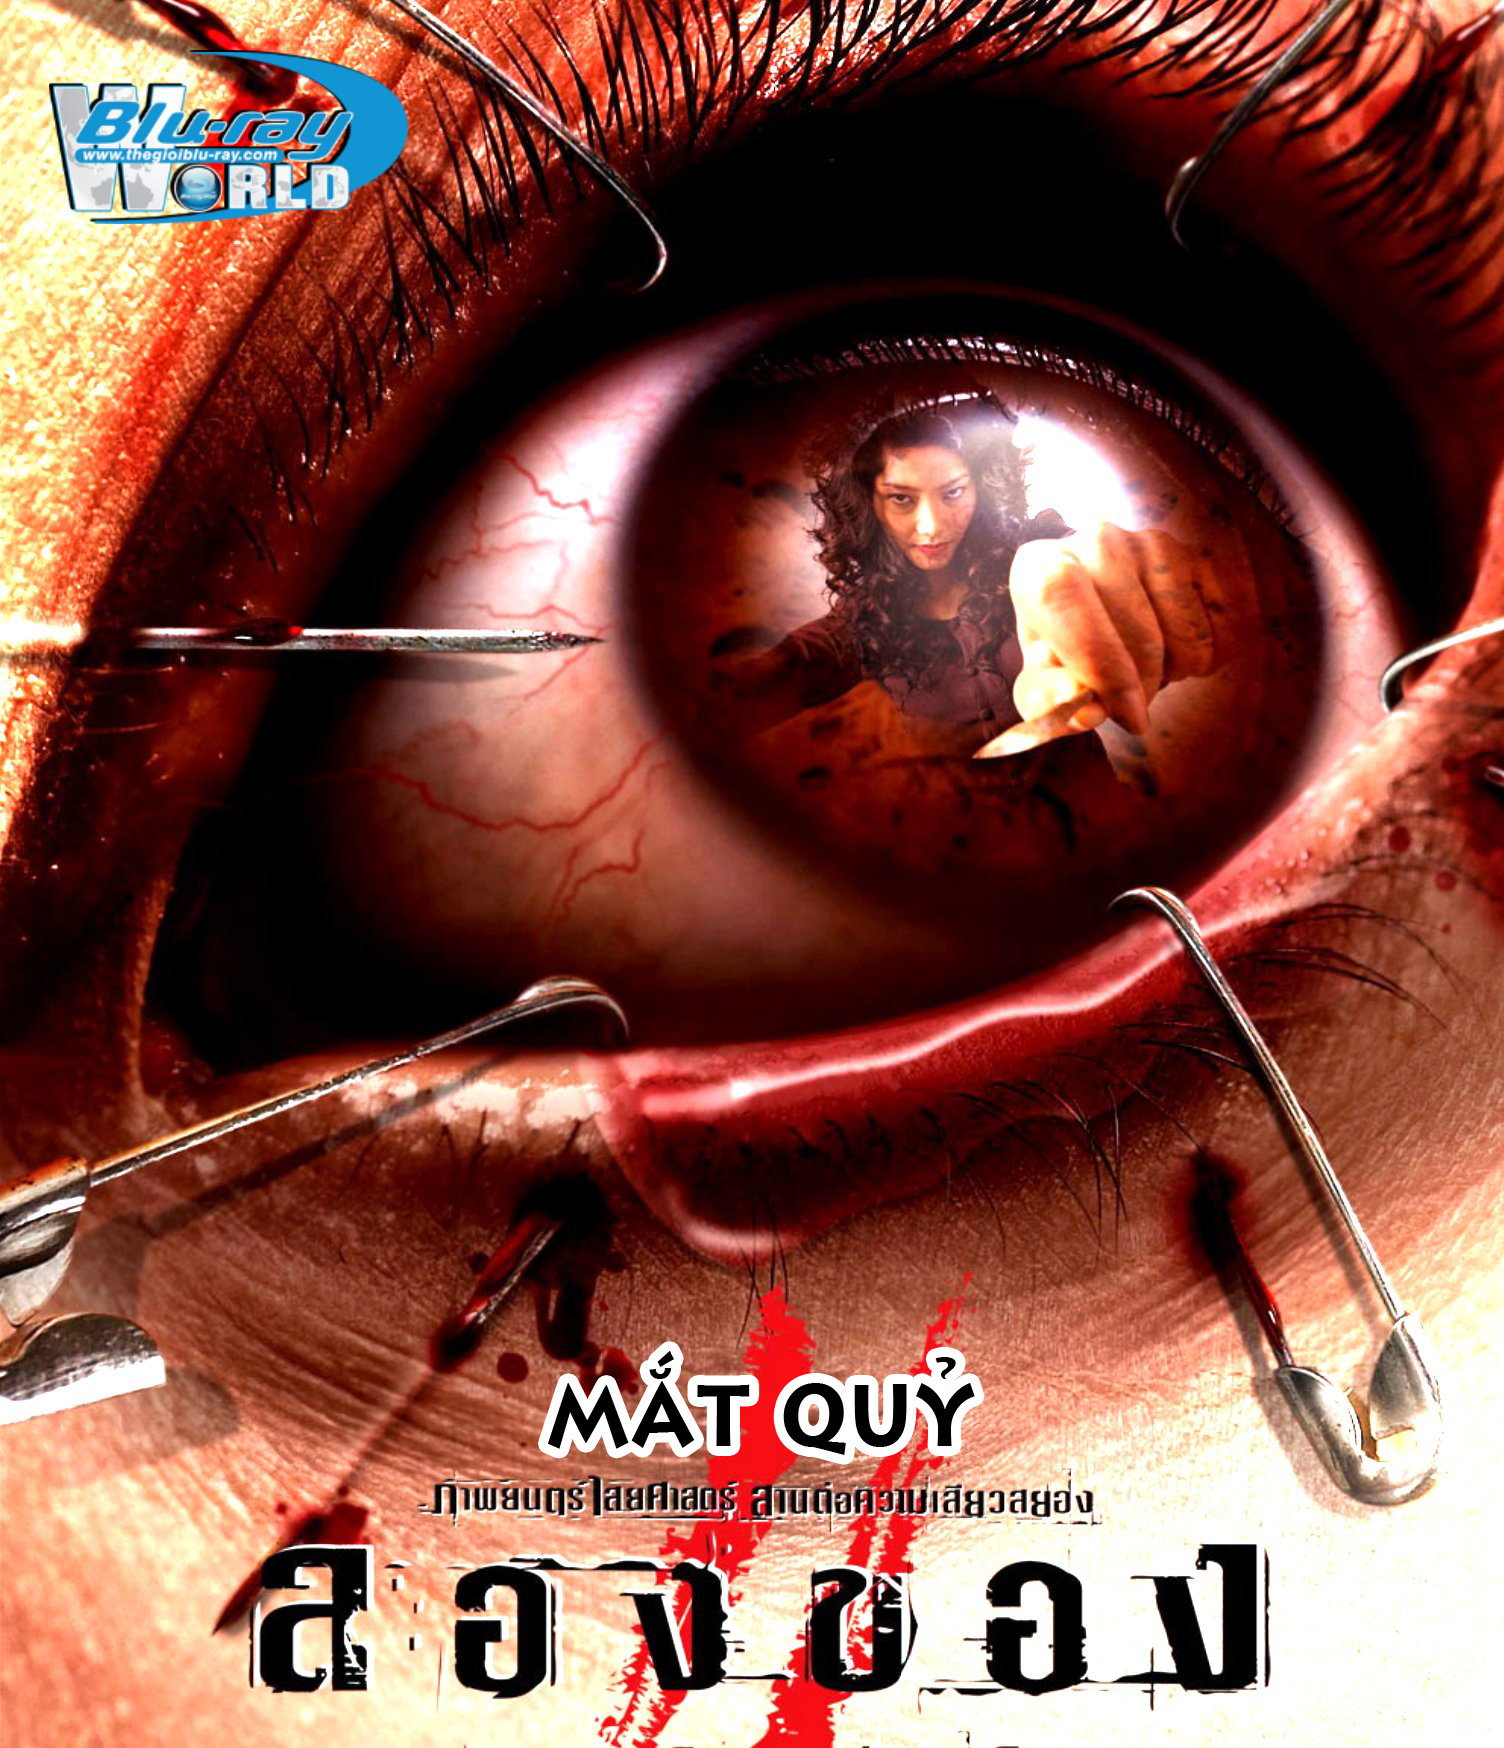 B1665. Art of the Devil 2 - MẮT QUỶ 2D 25G (DTS-HD MA 5.1)